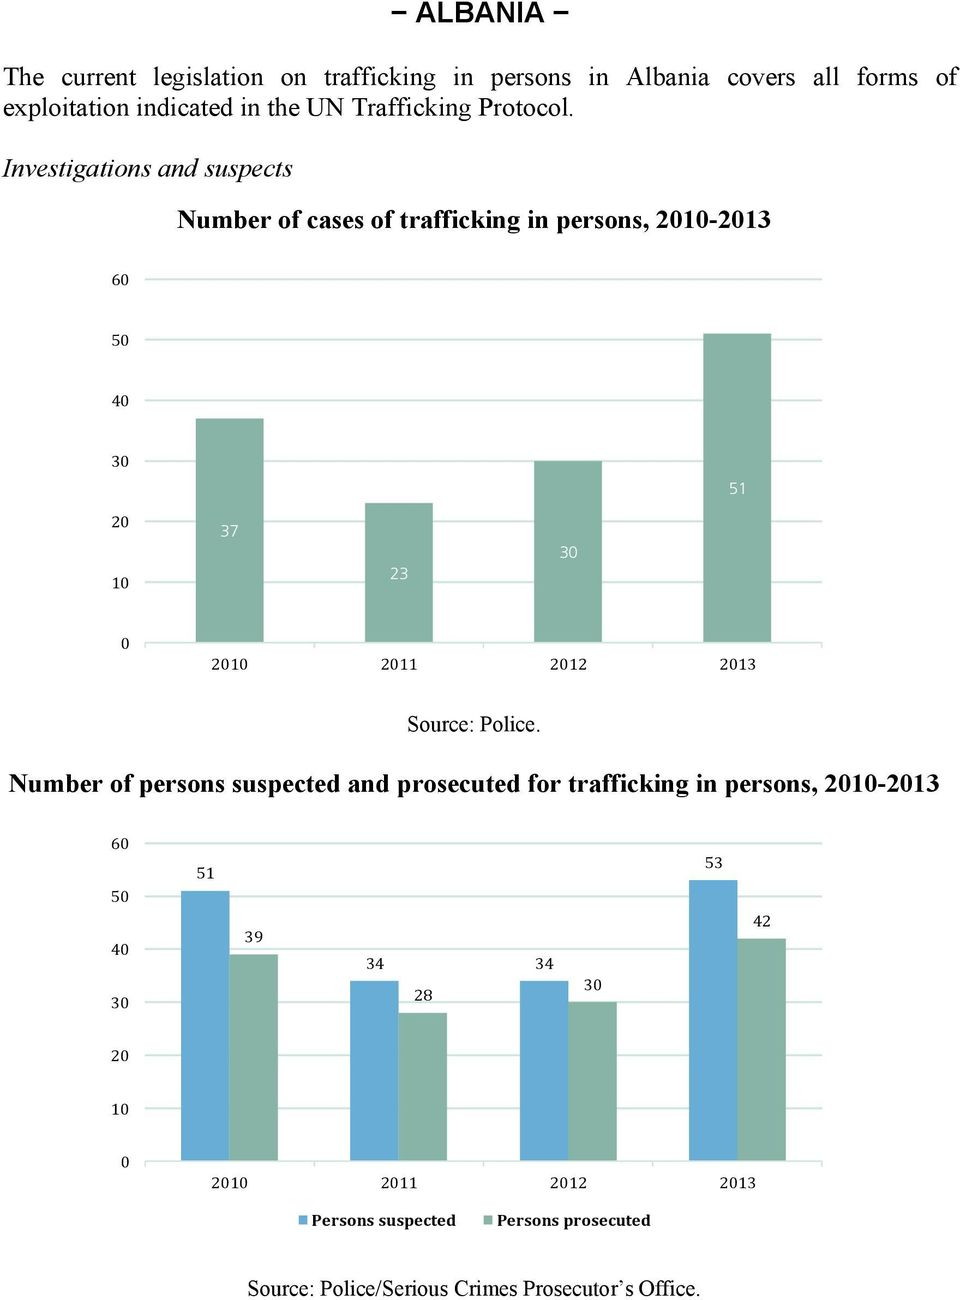 Investigations and suspects Number of cases of trafficking in persons, 21-213 6 5 4 3 51 2 1 37 23 3 21 211 212 213